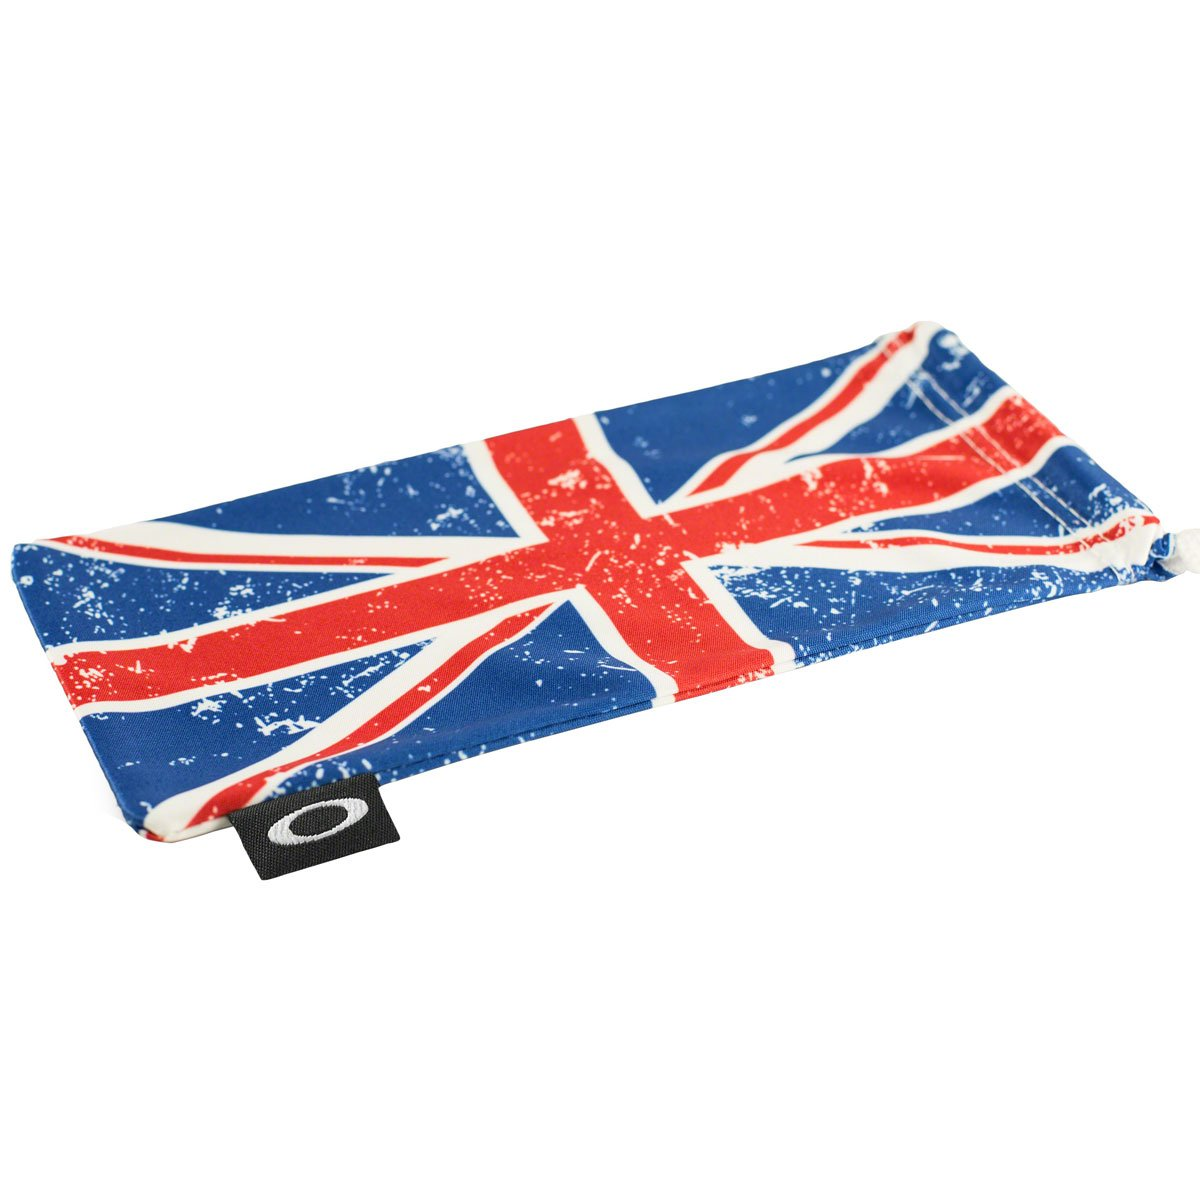 Oakley Microbag UK Flag Sunglass Accessories - Assorted/One Size